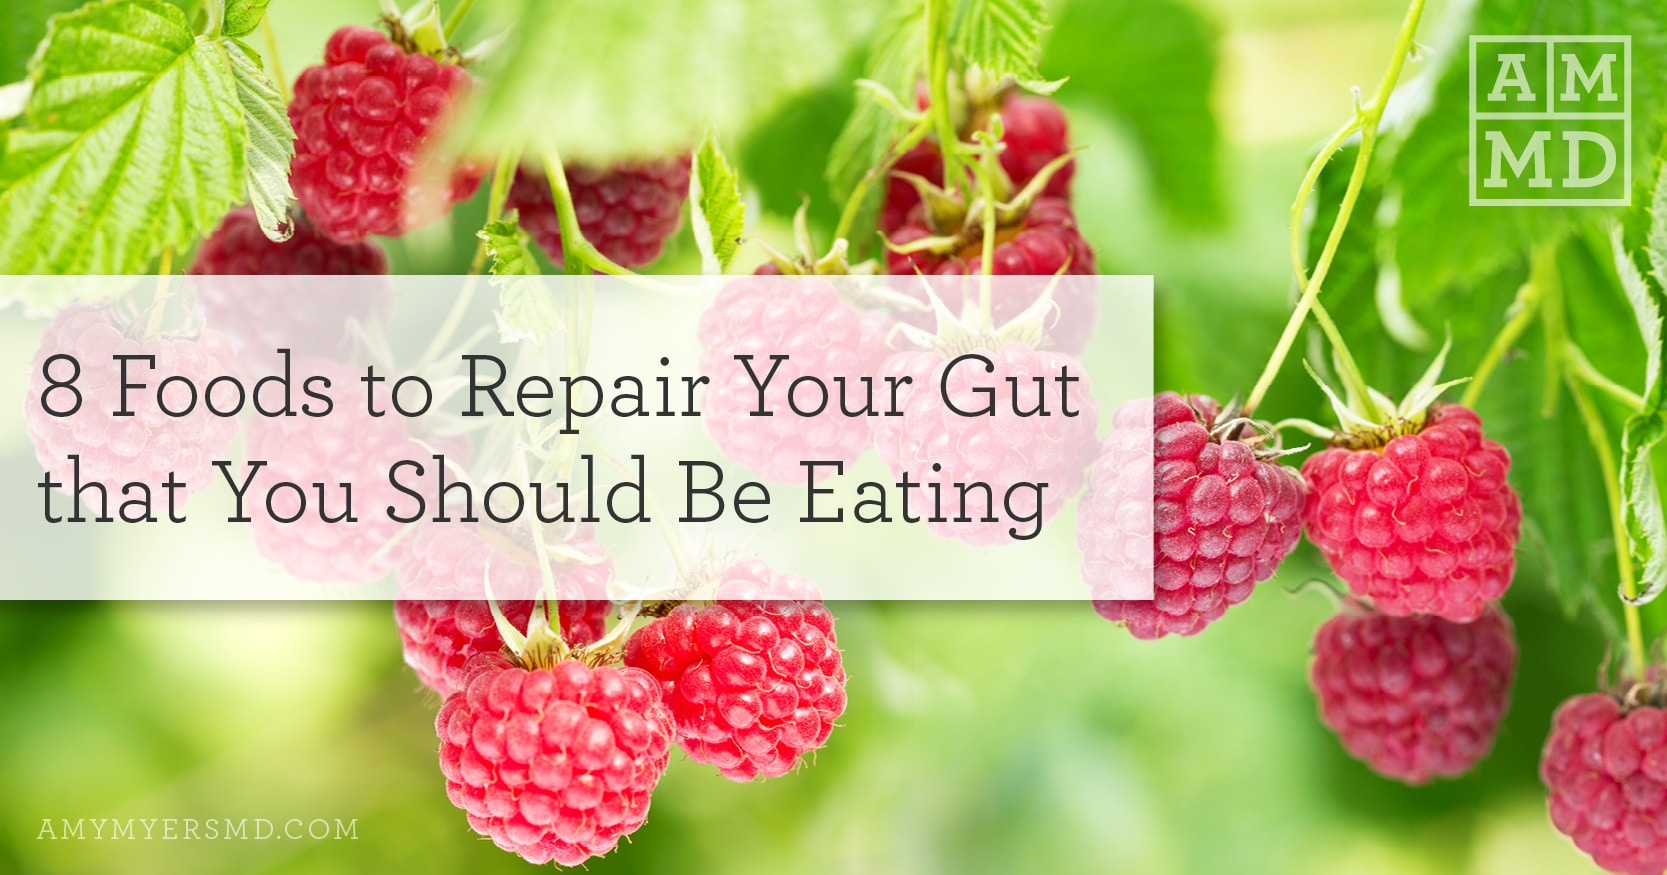 8 foods to repair your gut